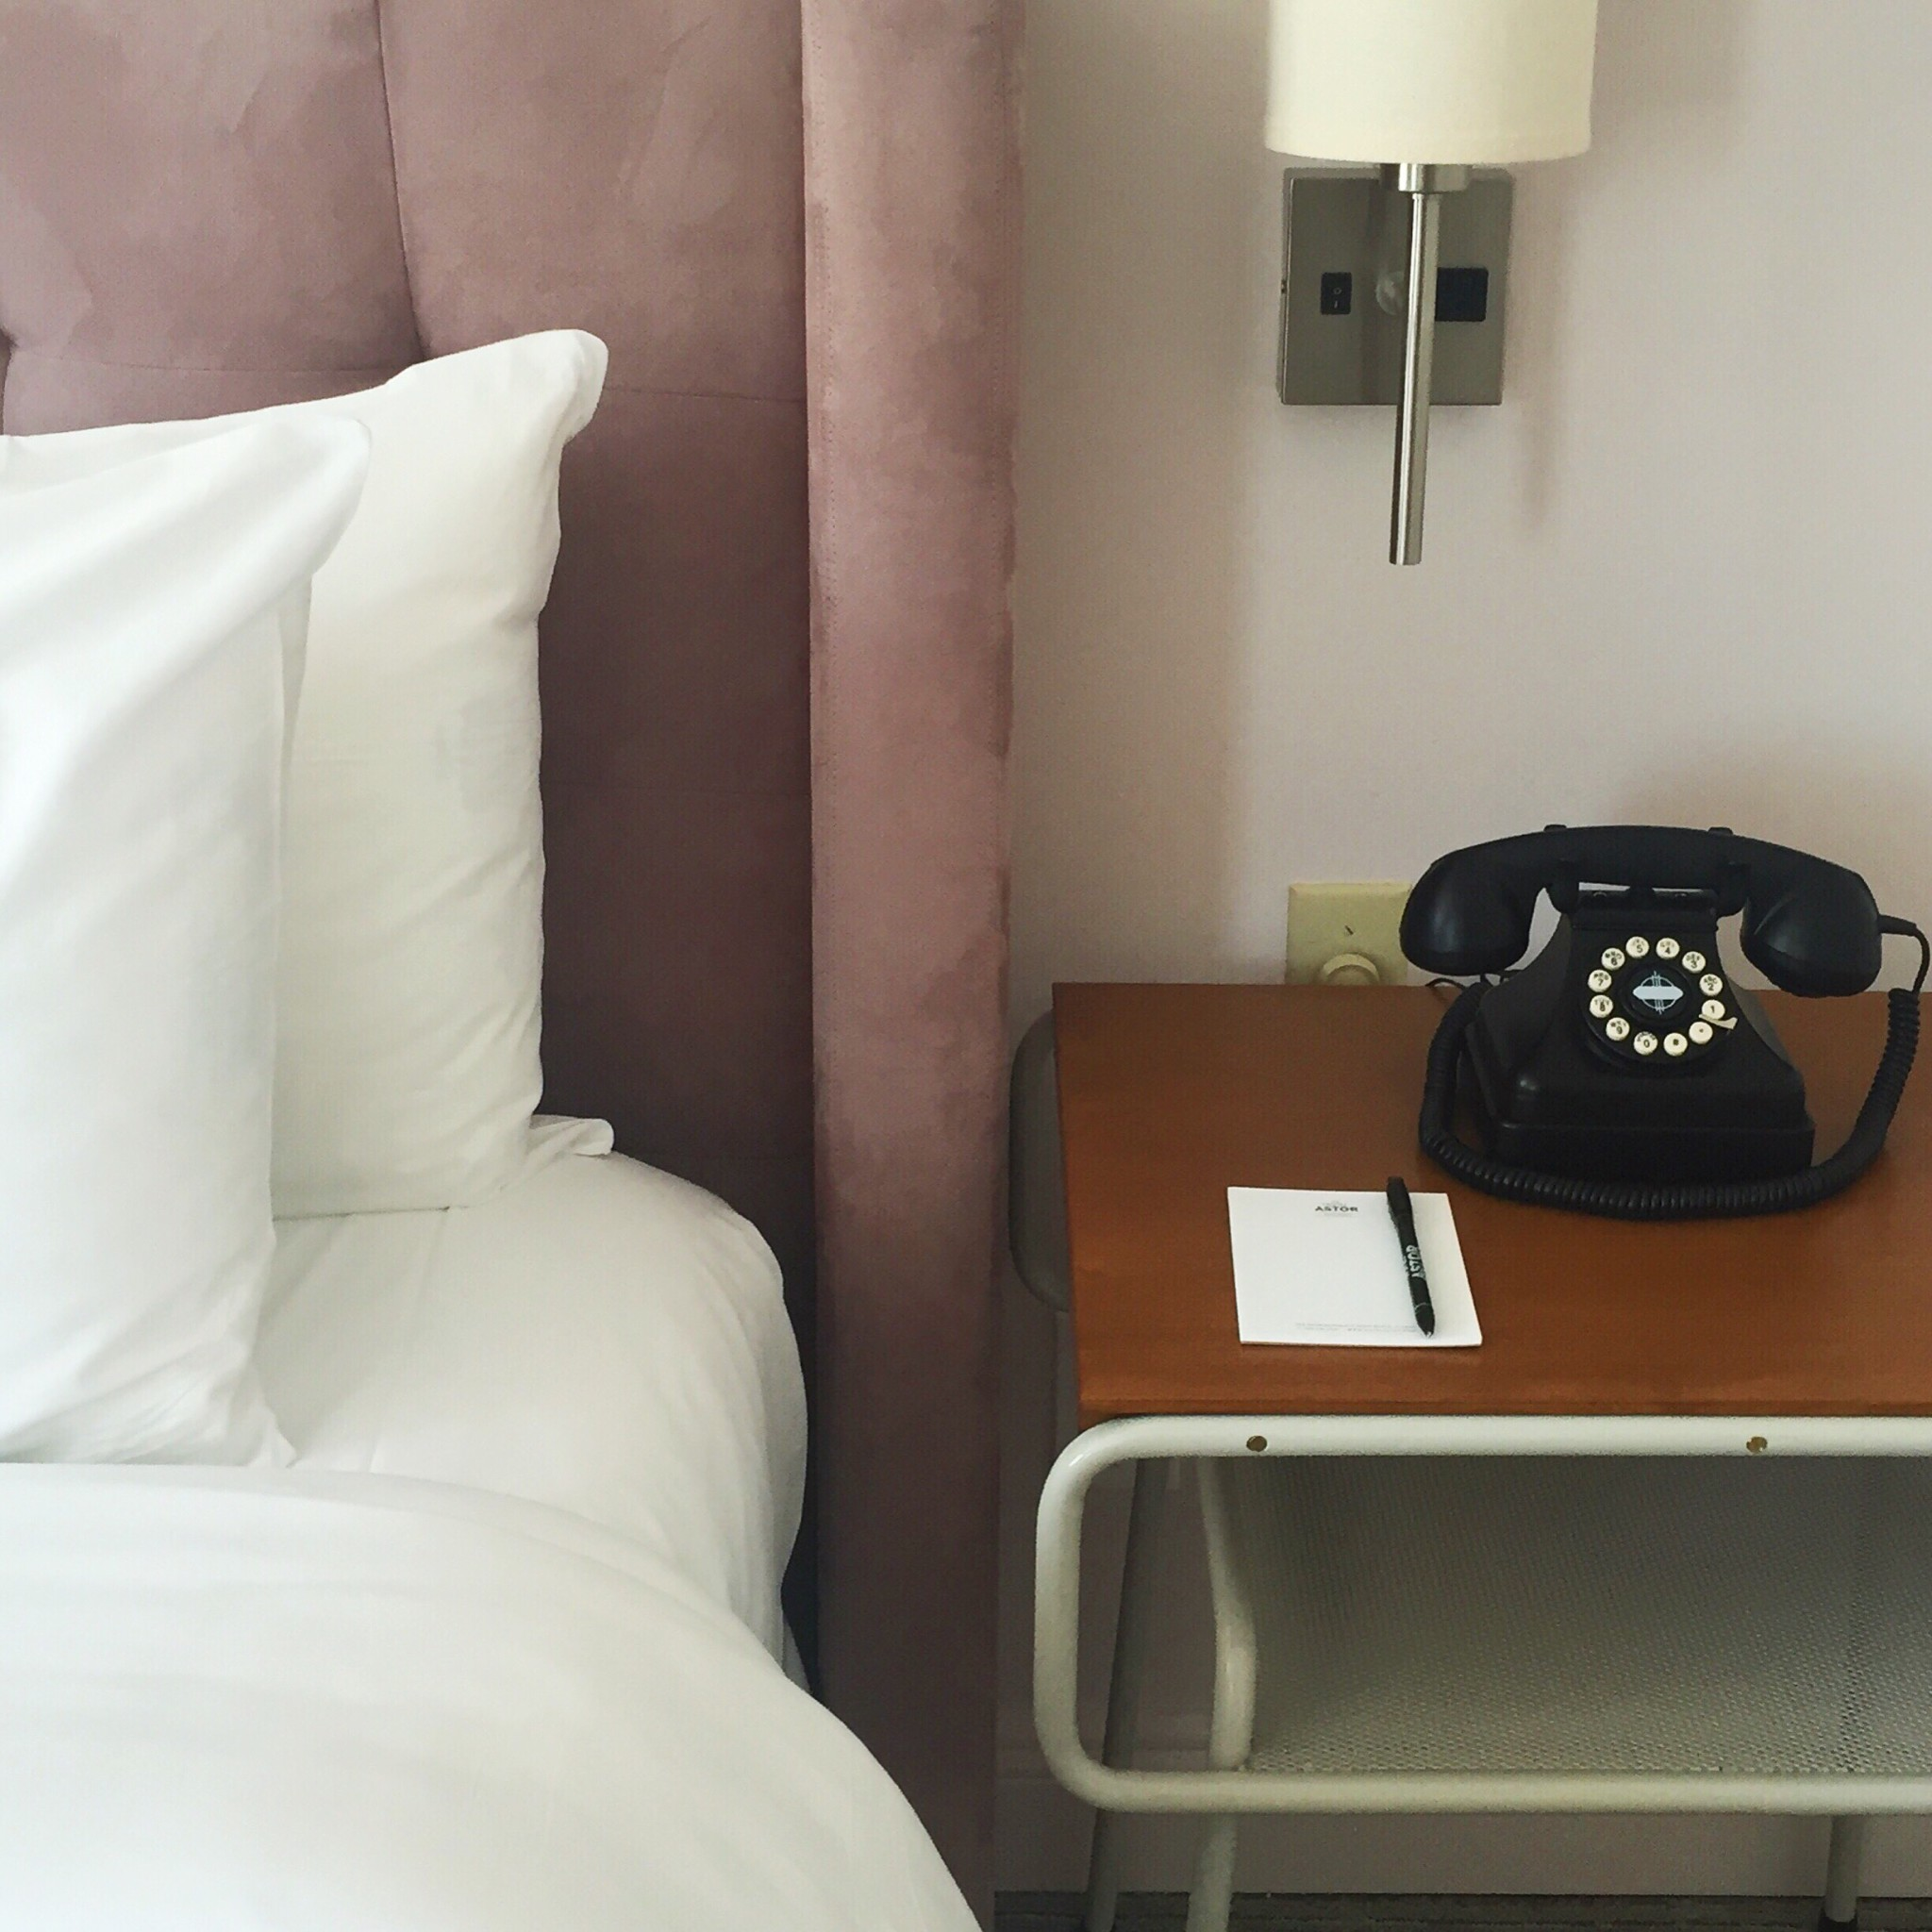 LGBT Friendly Hotel Review: The Hotel Astor at Miami Beach